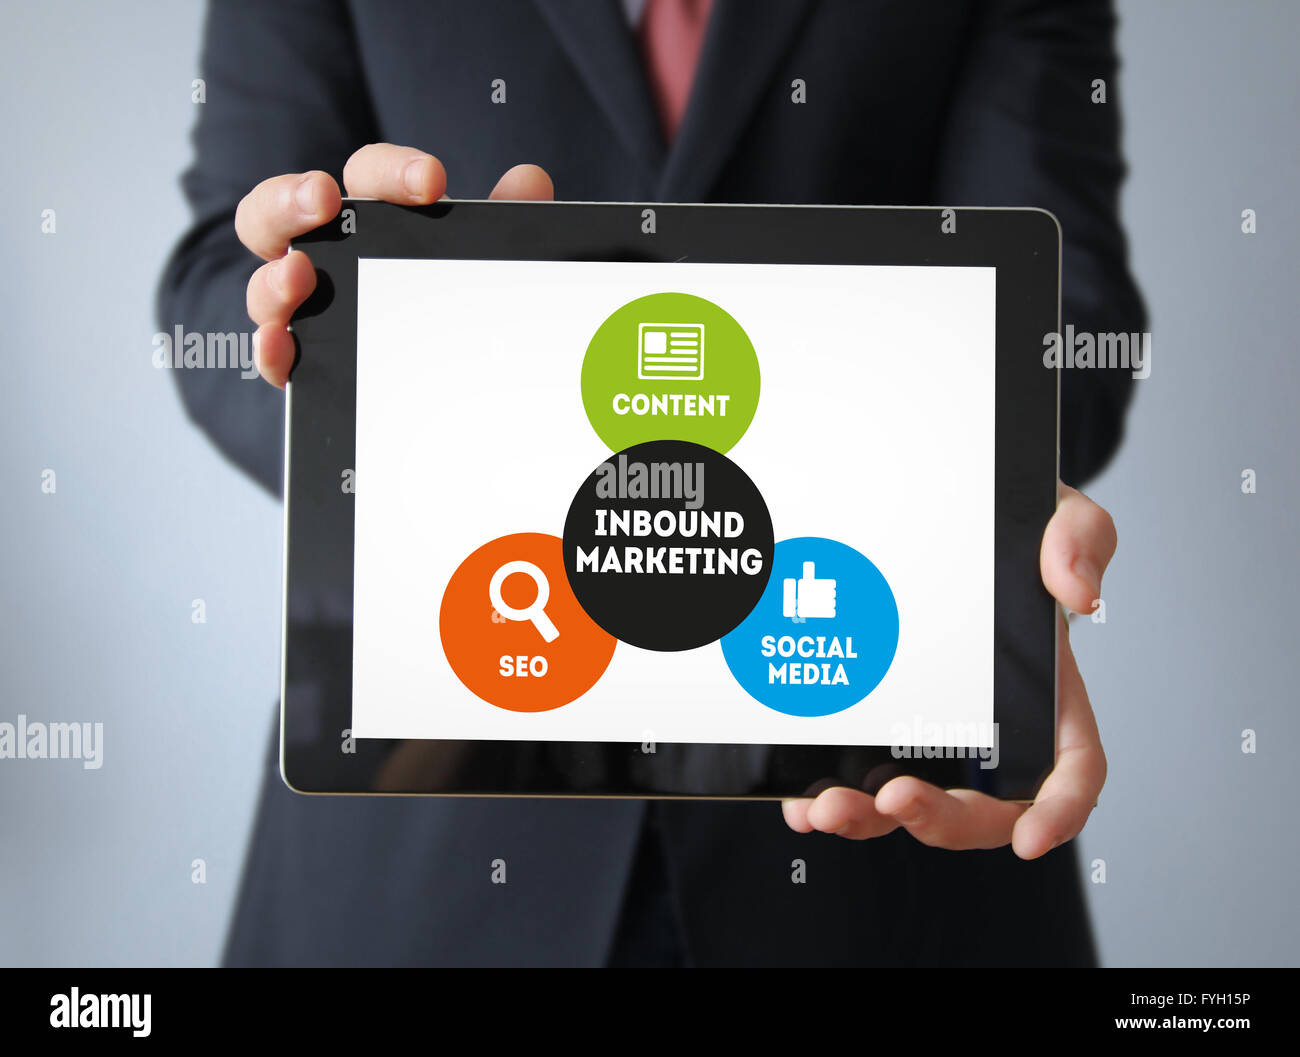 Commercial Concept: Businessman with Inbound marketing scheme on the screen. All graphics are made up. - Stock Image